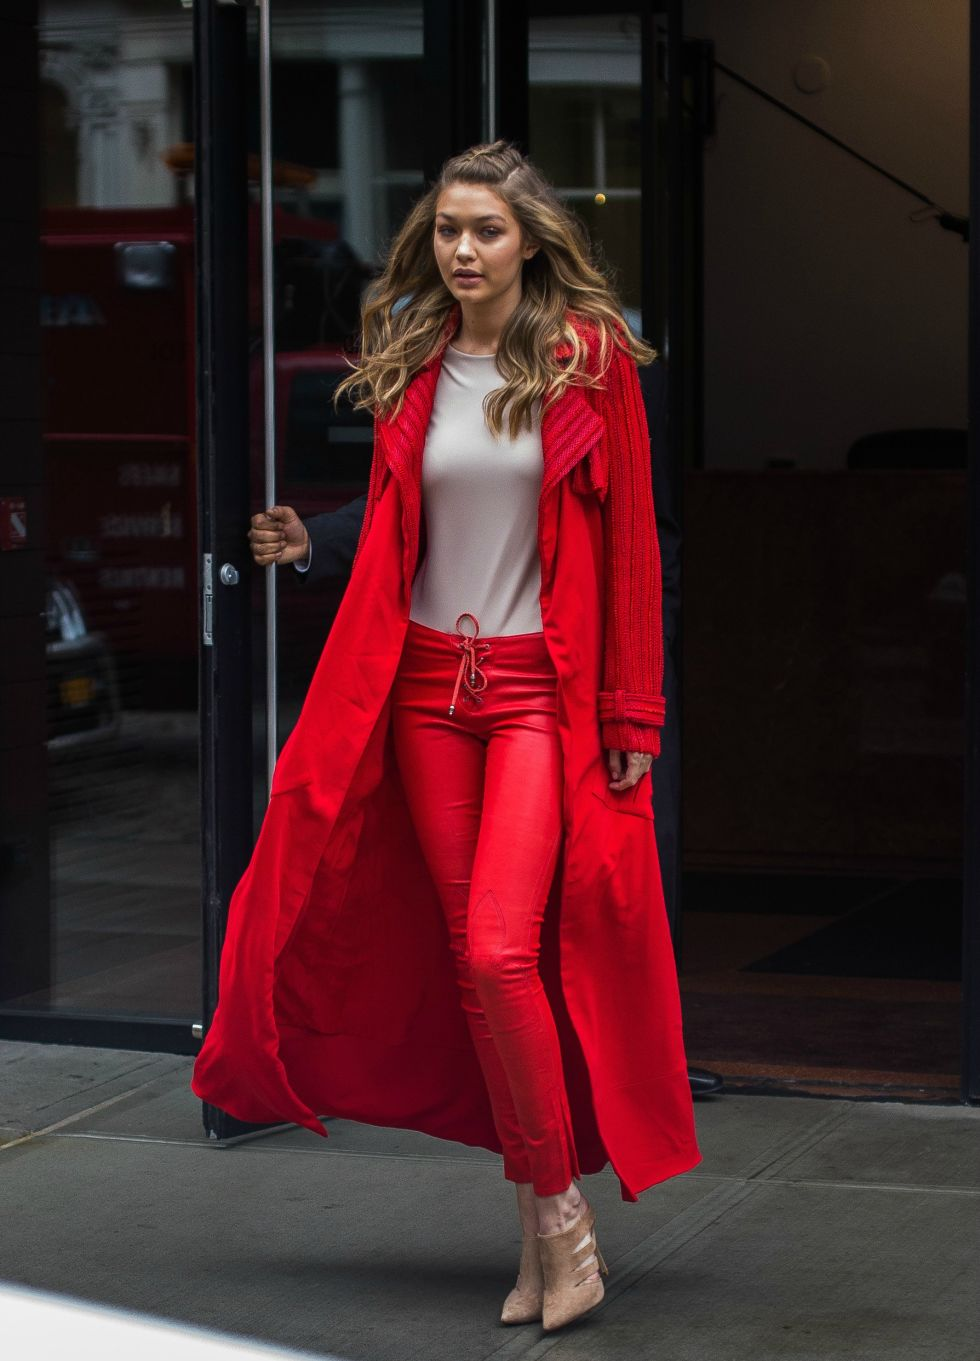 GET THE LOOK - GIGI IN RED